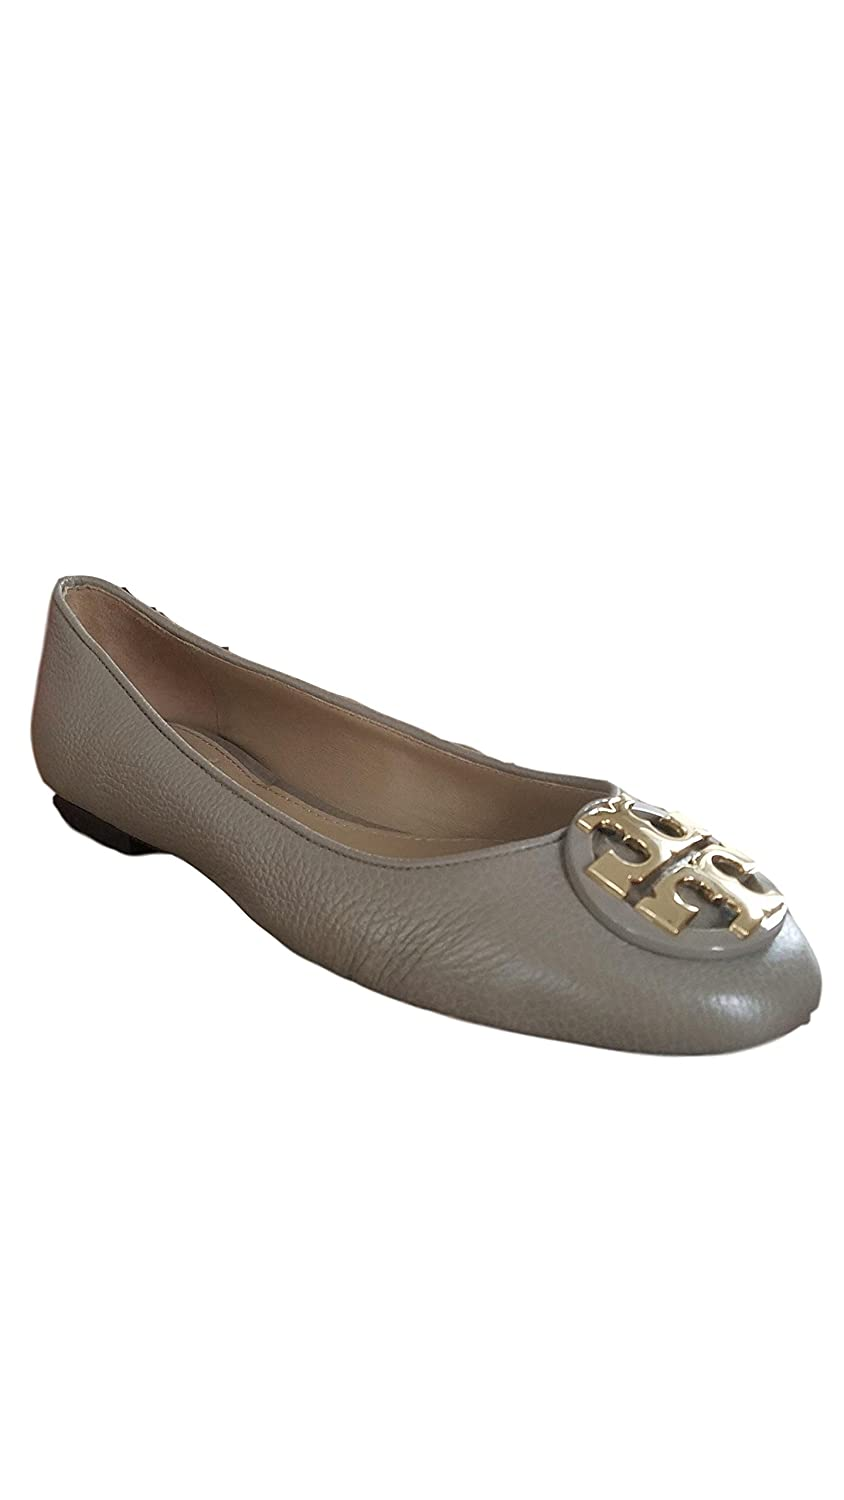 9caa67f6e Amazon.com | Tory Burch Claire Ballet Flat, Tumbled Leather, French Gray/Gold  | Shoes